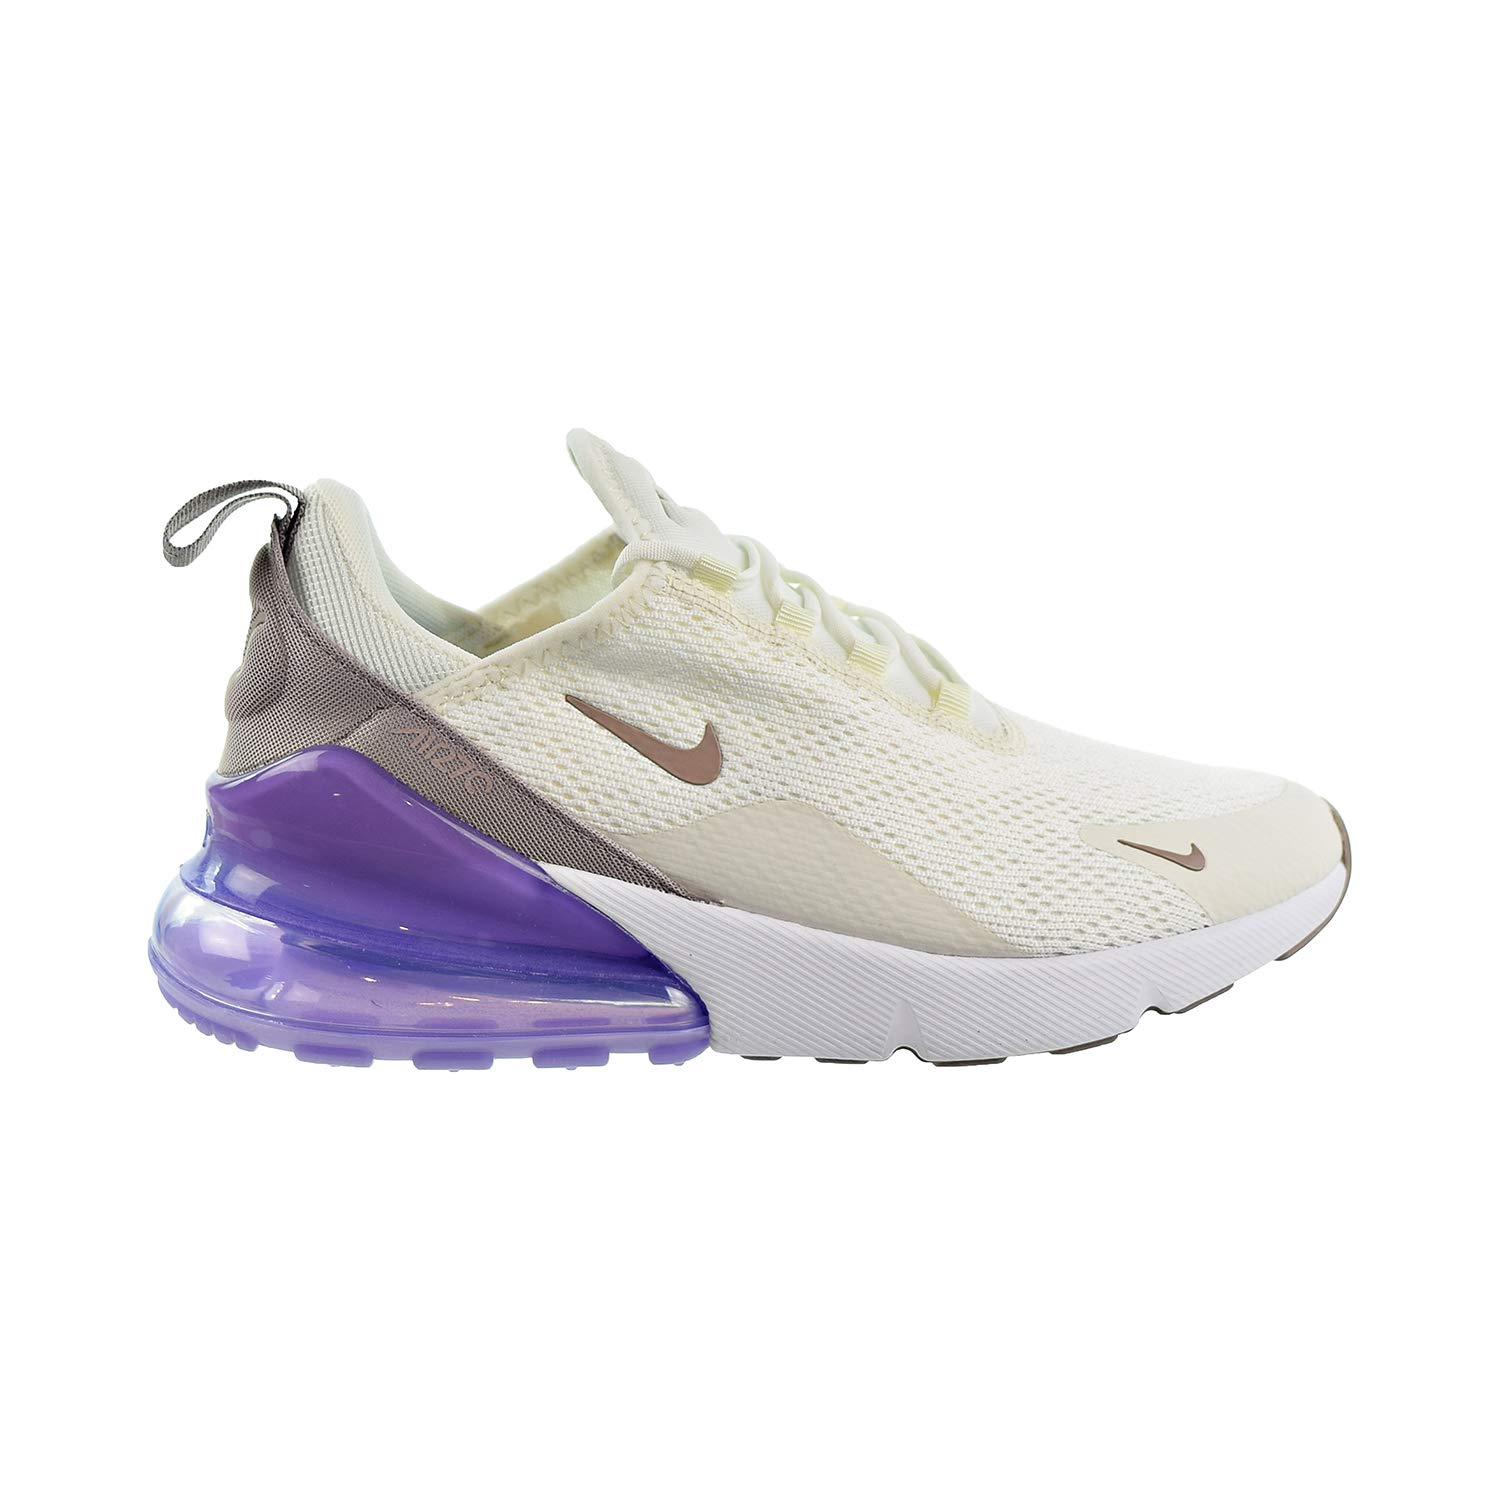 on sale 3c6ca a503e Amazon.com | Nike W Air Max 270 Womens Sneakers AH6789-107 ...